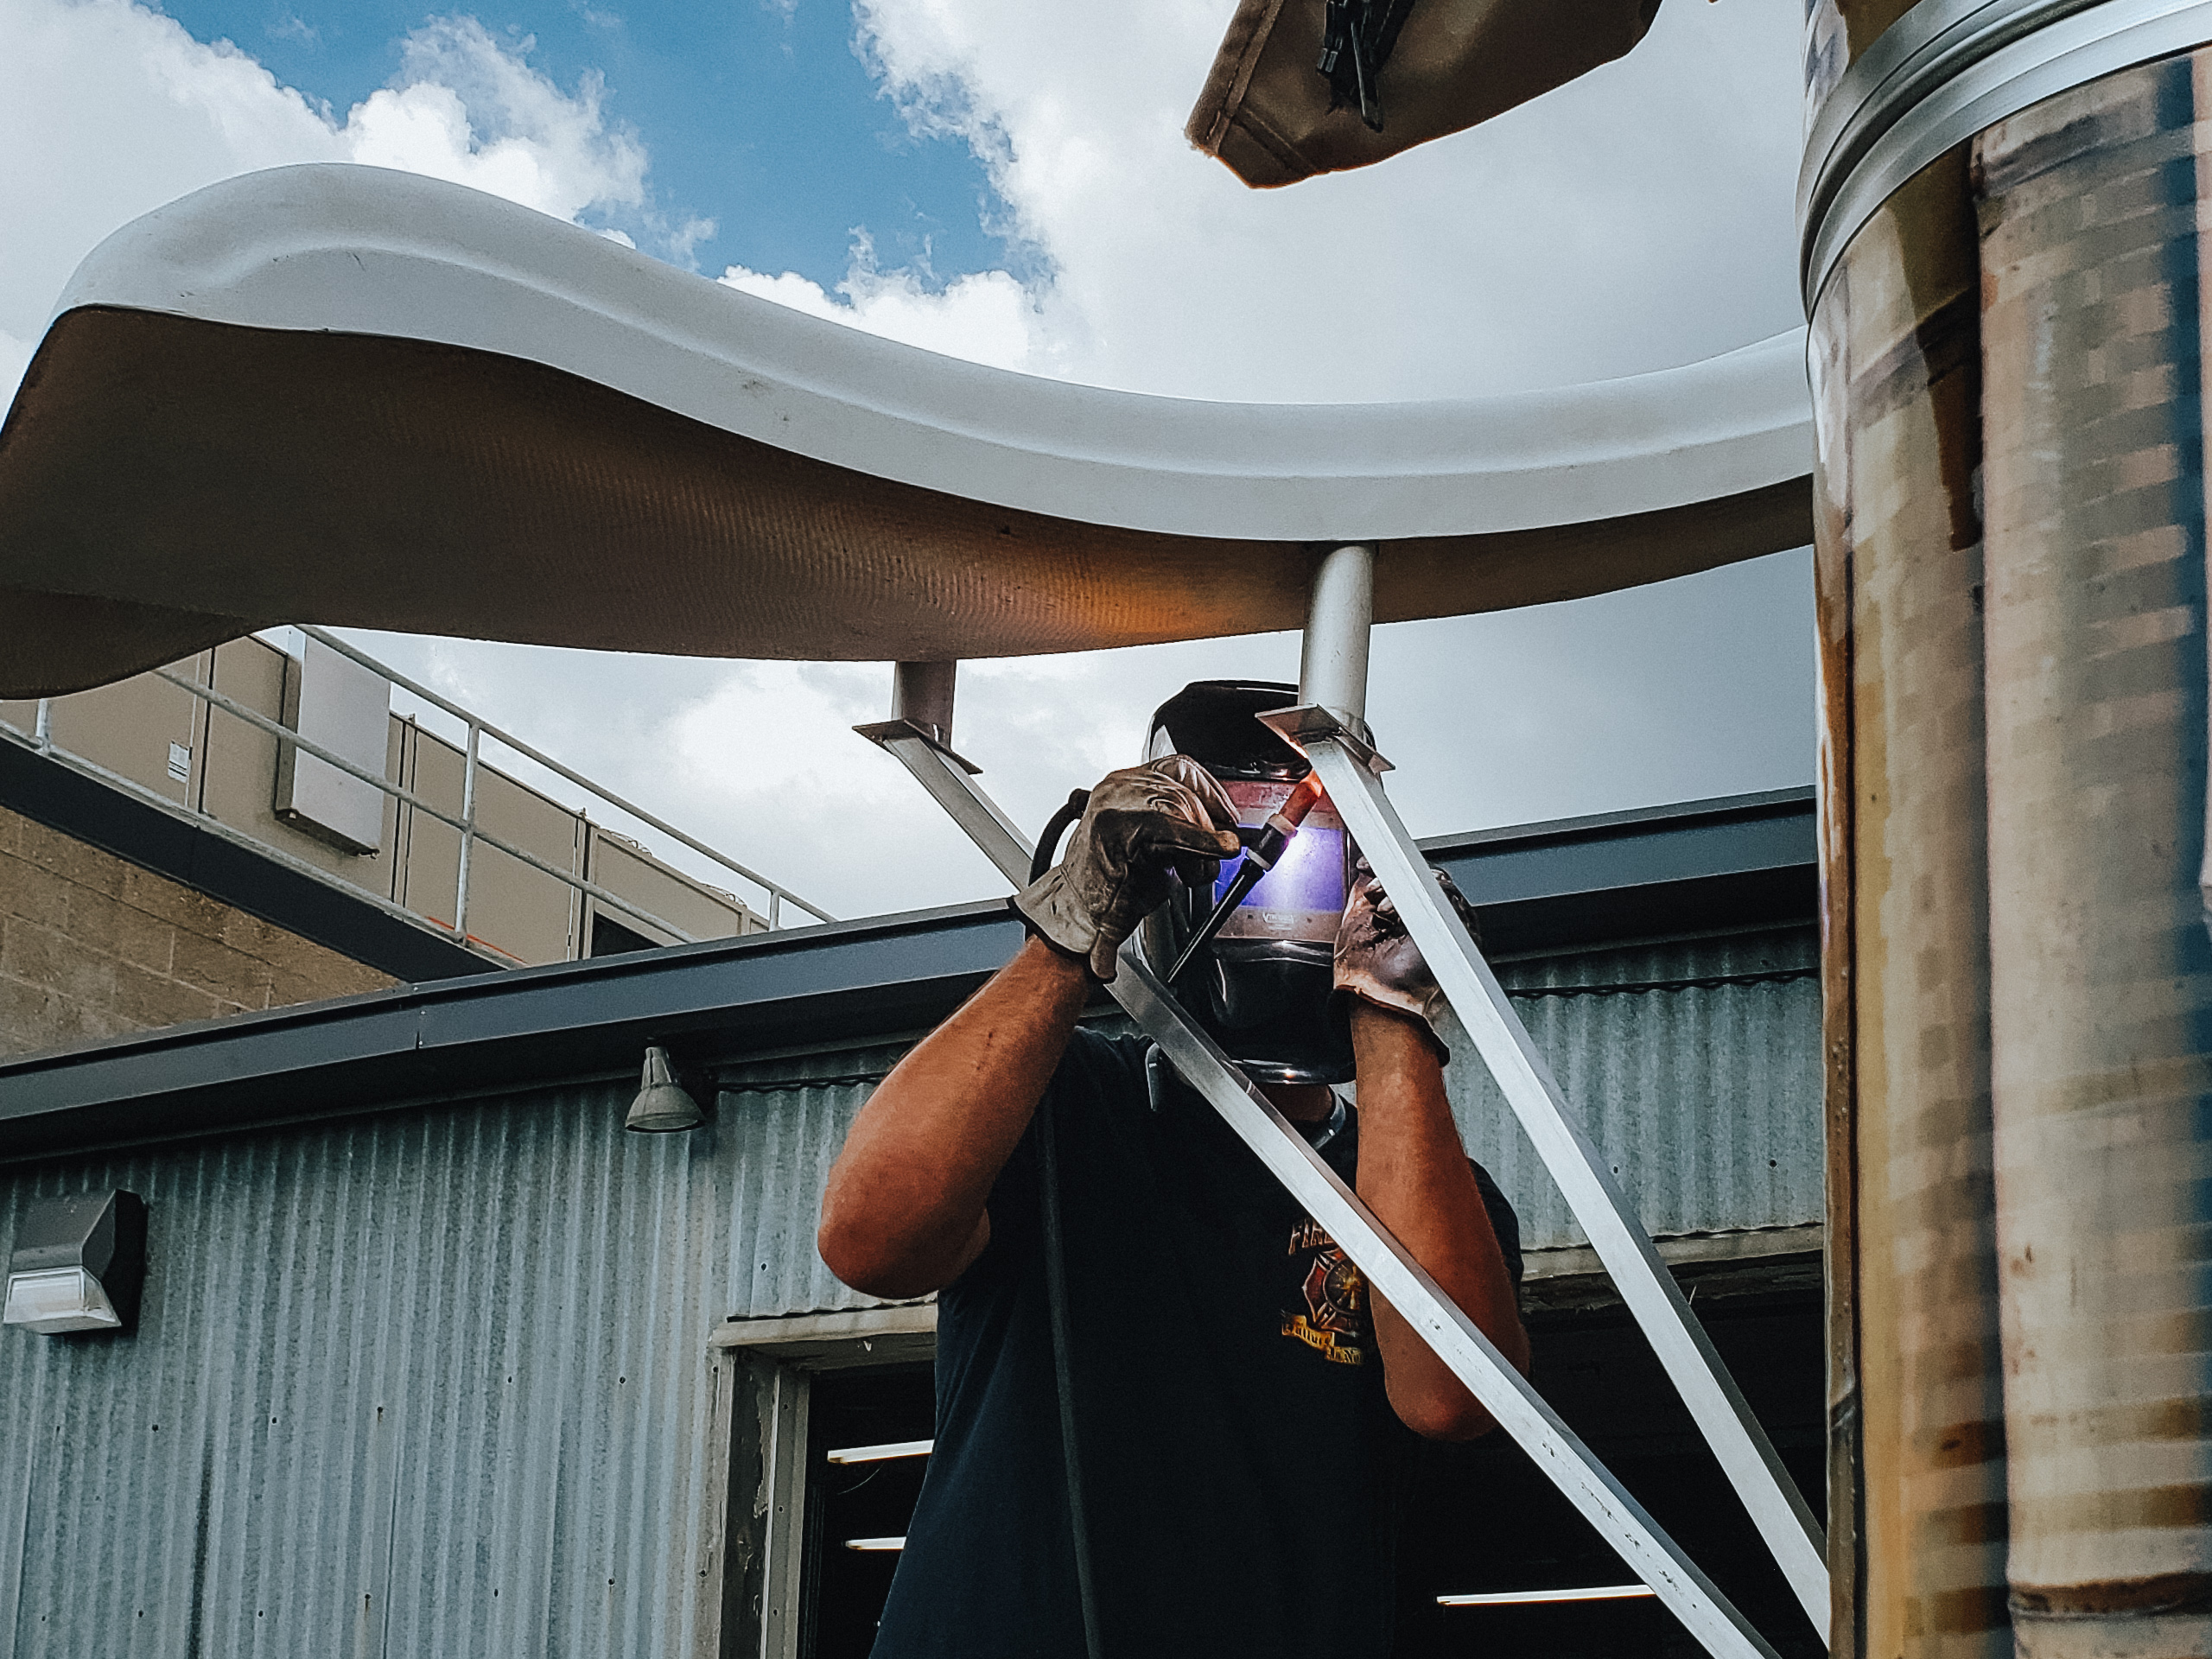 Welding aluminum outside the shop to complete custom water slide project